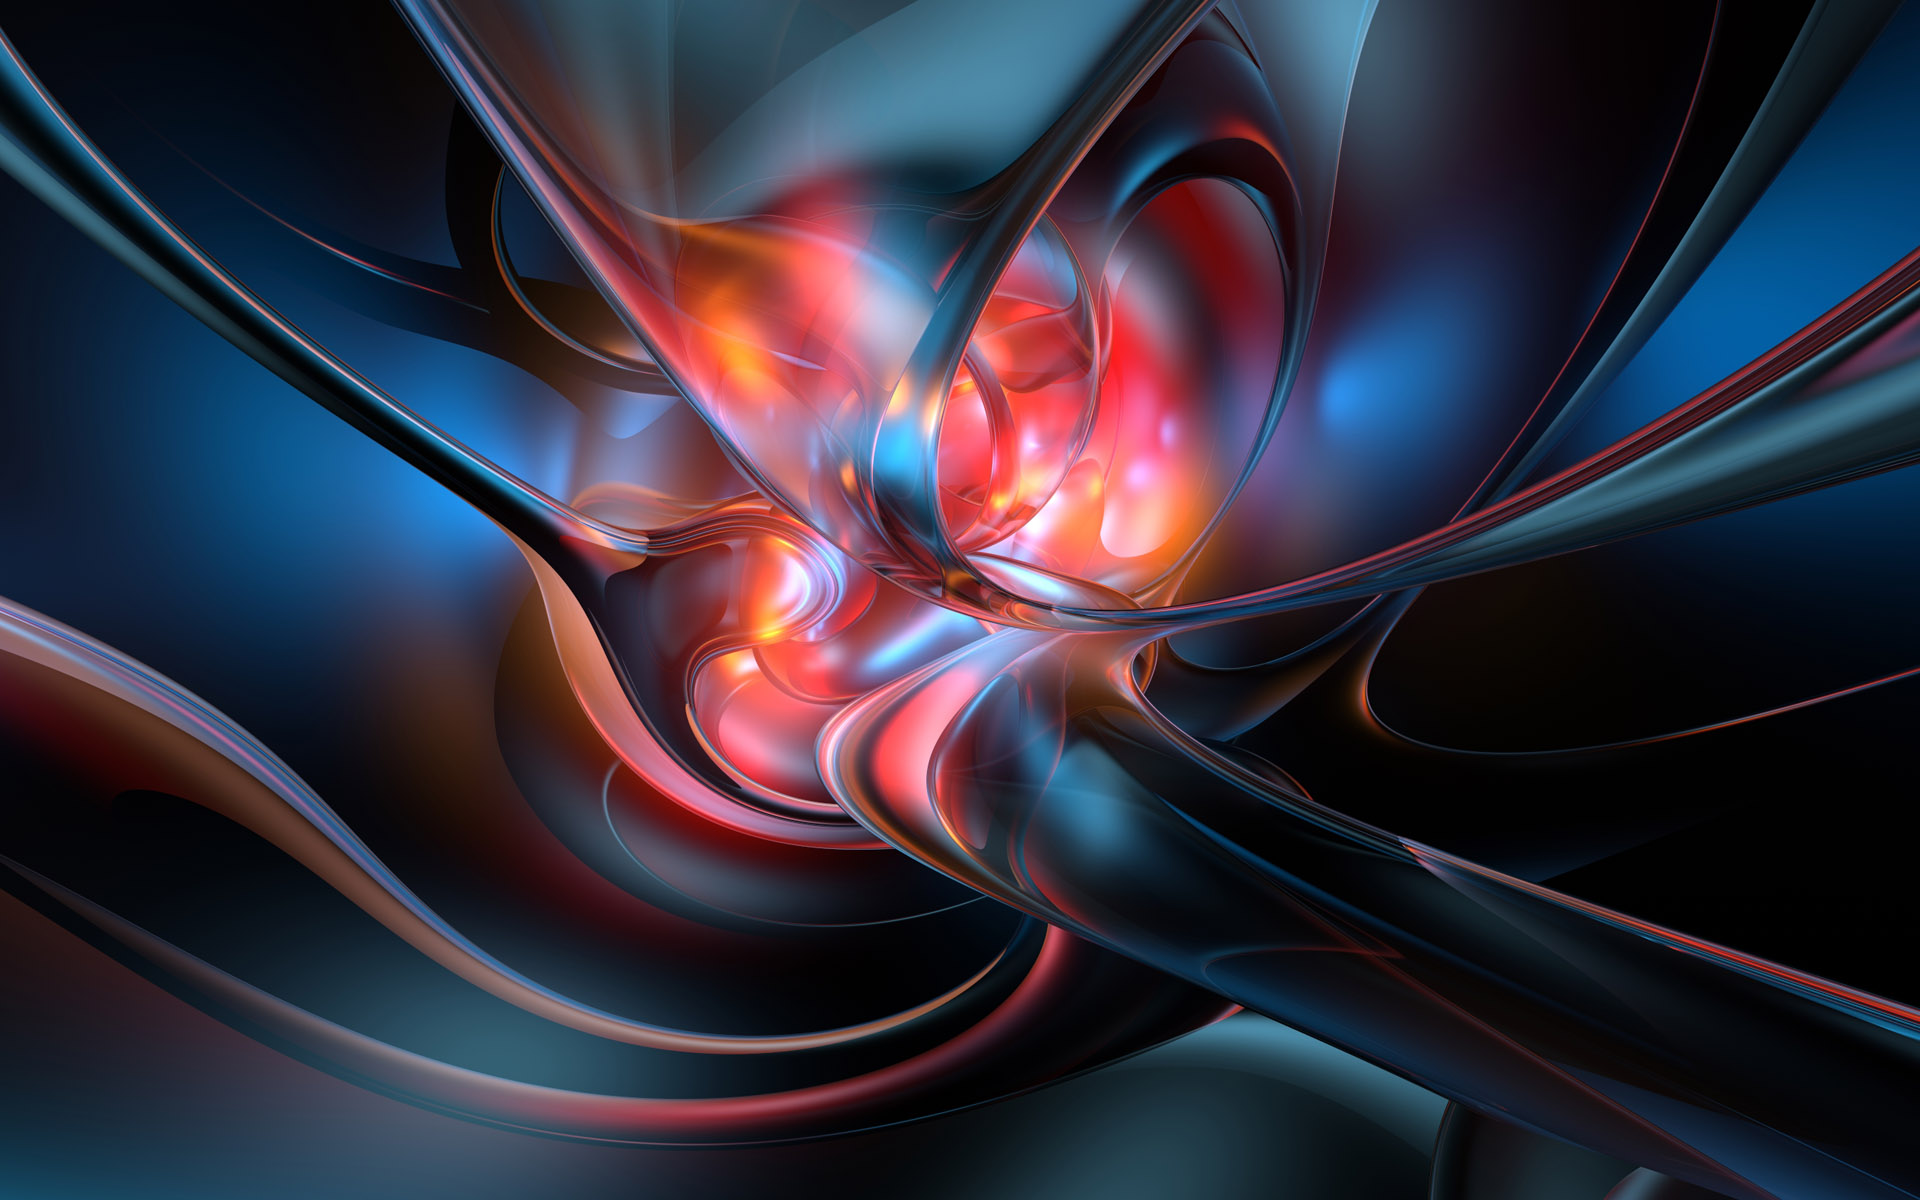 Abstract 3D Wallpaper 3   3D Photography Desktop Wallpapers 14698 1920x1200